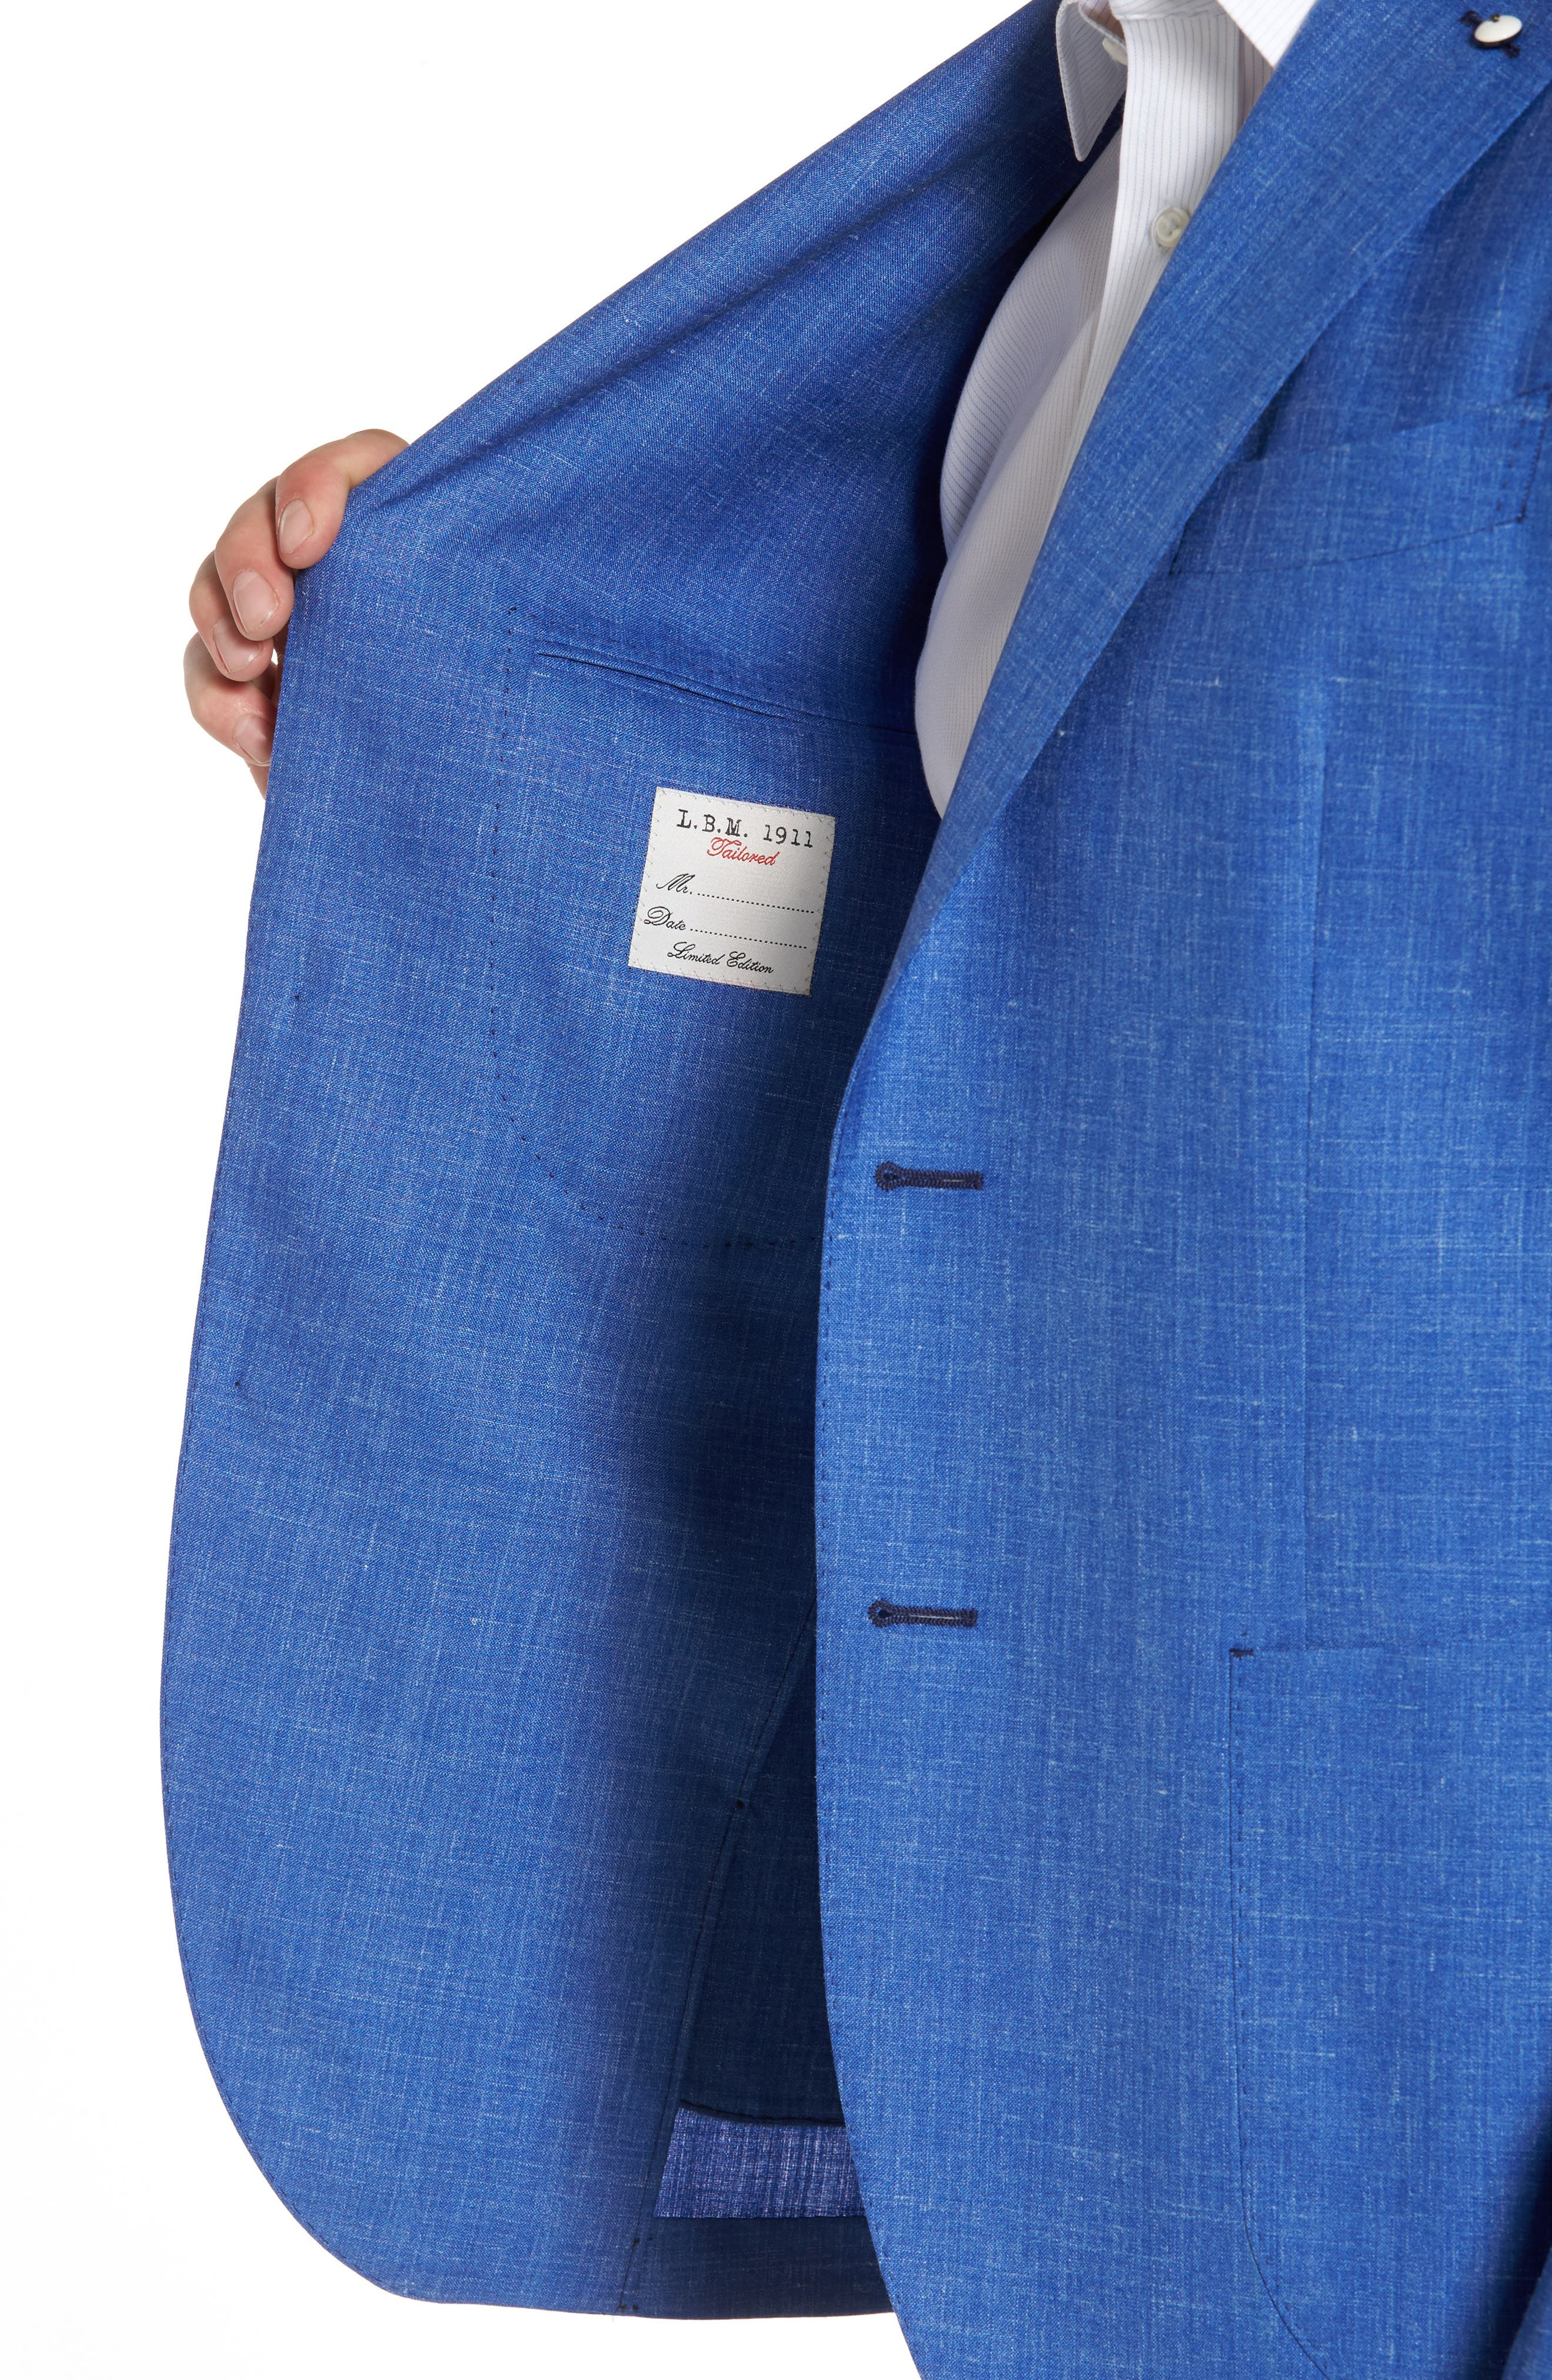 Classic Fit Wool Blend Blazer,                             Alternate thumbnail 4, color,                             410